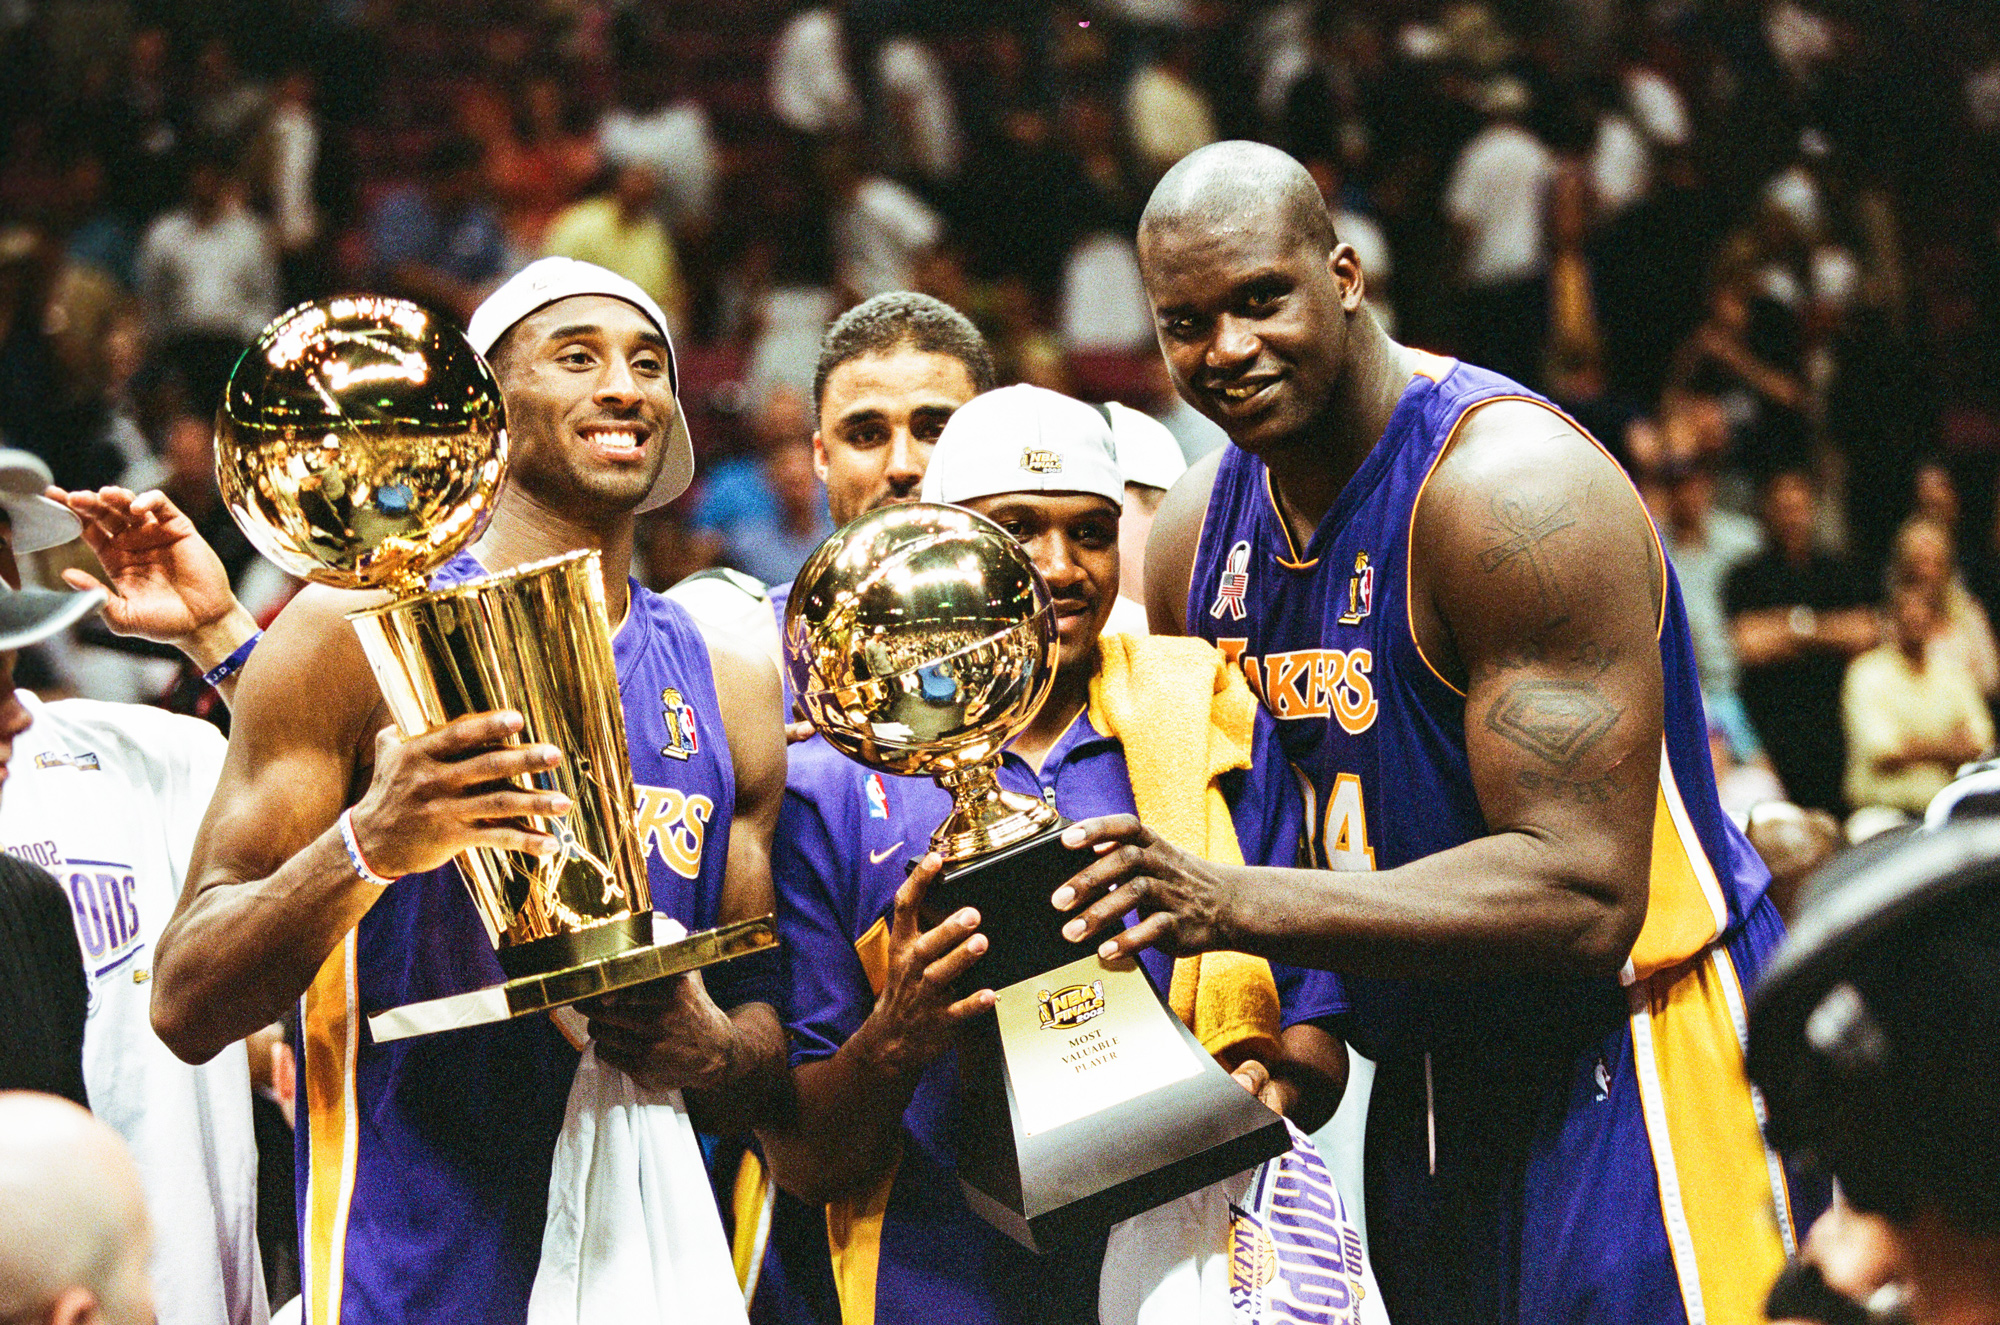 EAST RUTHERFORD, NJ - JUNE 12: Kobe Bryant, Lindsey Hunter and Shaquille O'Neal of the Los Angeles Lakers celebrate following Game Four of the NBA Finals against the New Jersey Nets on June 12, 2002 at Continental Airlines Arena in East Rutherford, New Jersey. (Photo by Sporting News via Getty Images via Getty Images)